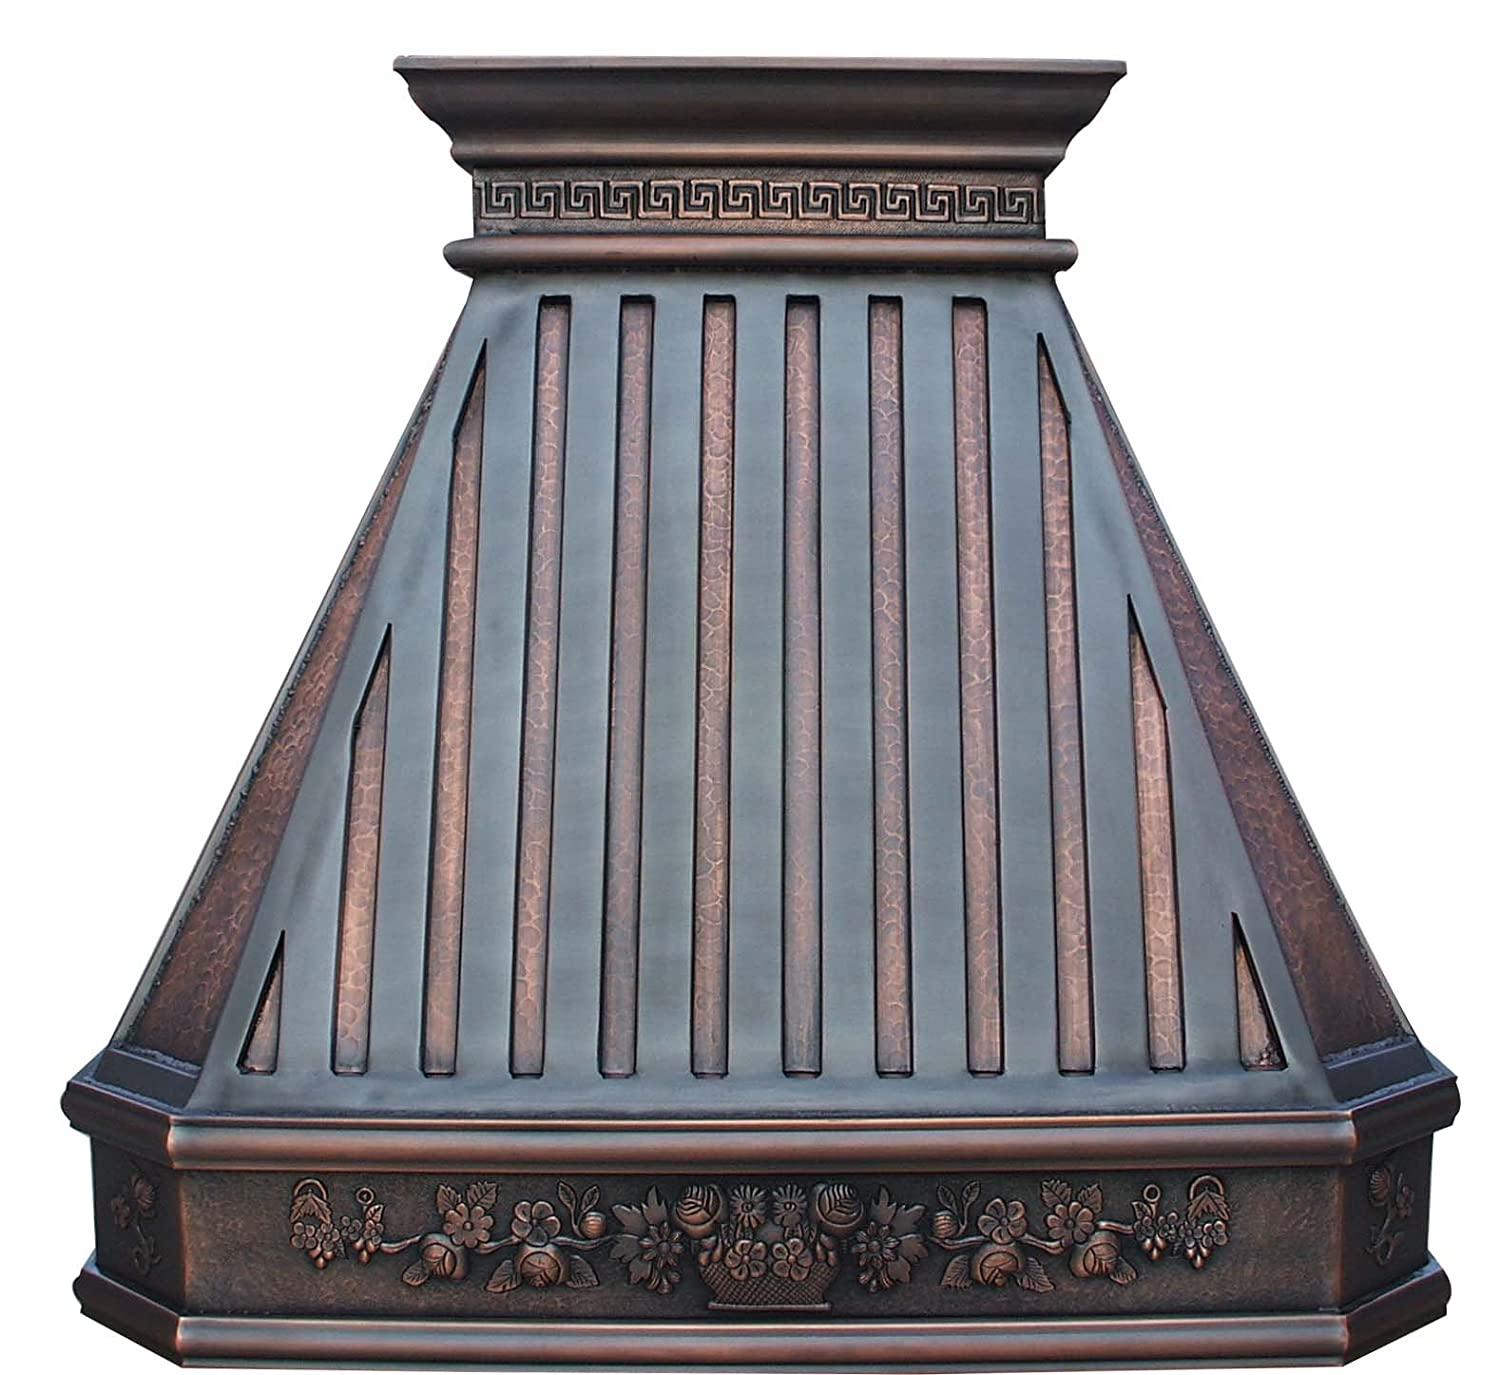 Copper Kitchen Stove Hood with Decorative Patterns Wrapped Around Comes with Powerful Stainless Steel Vent and Baffle Filter Sinda H14TR